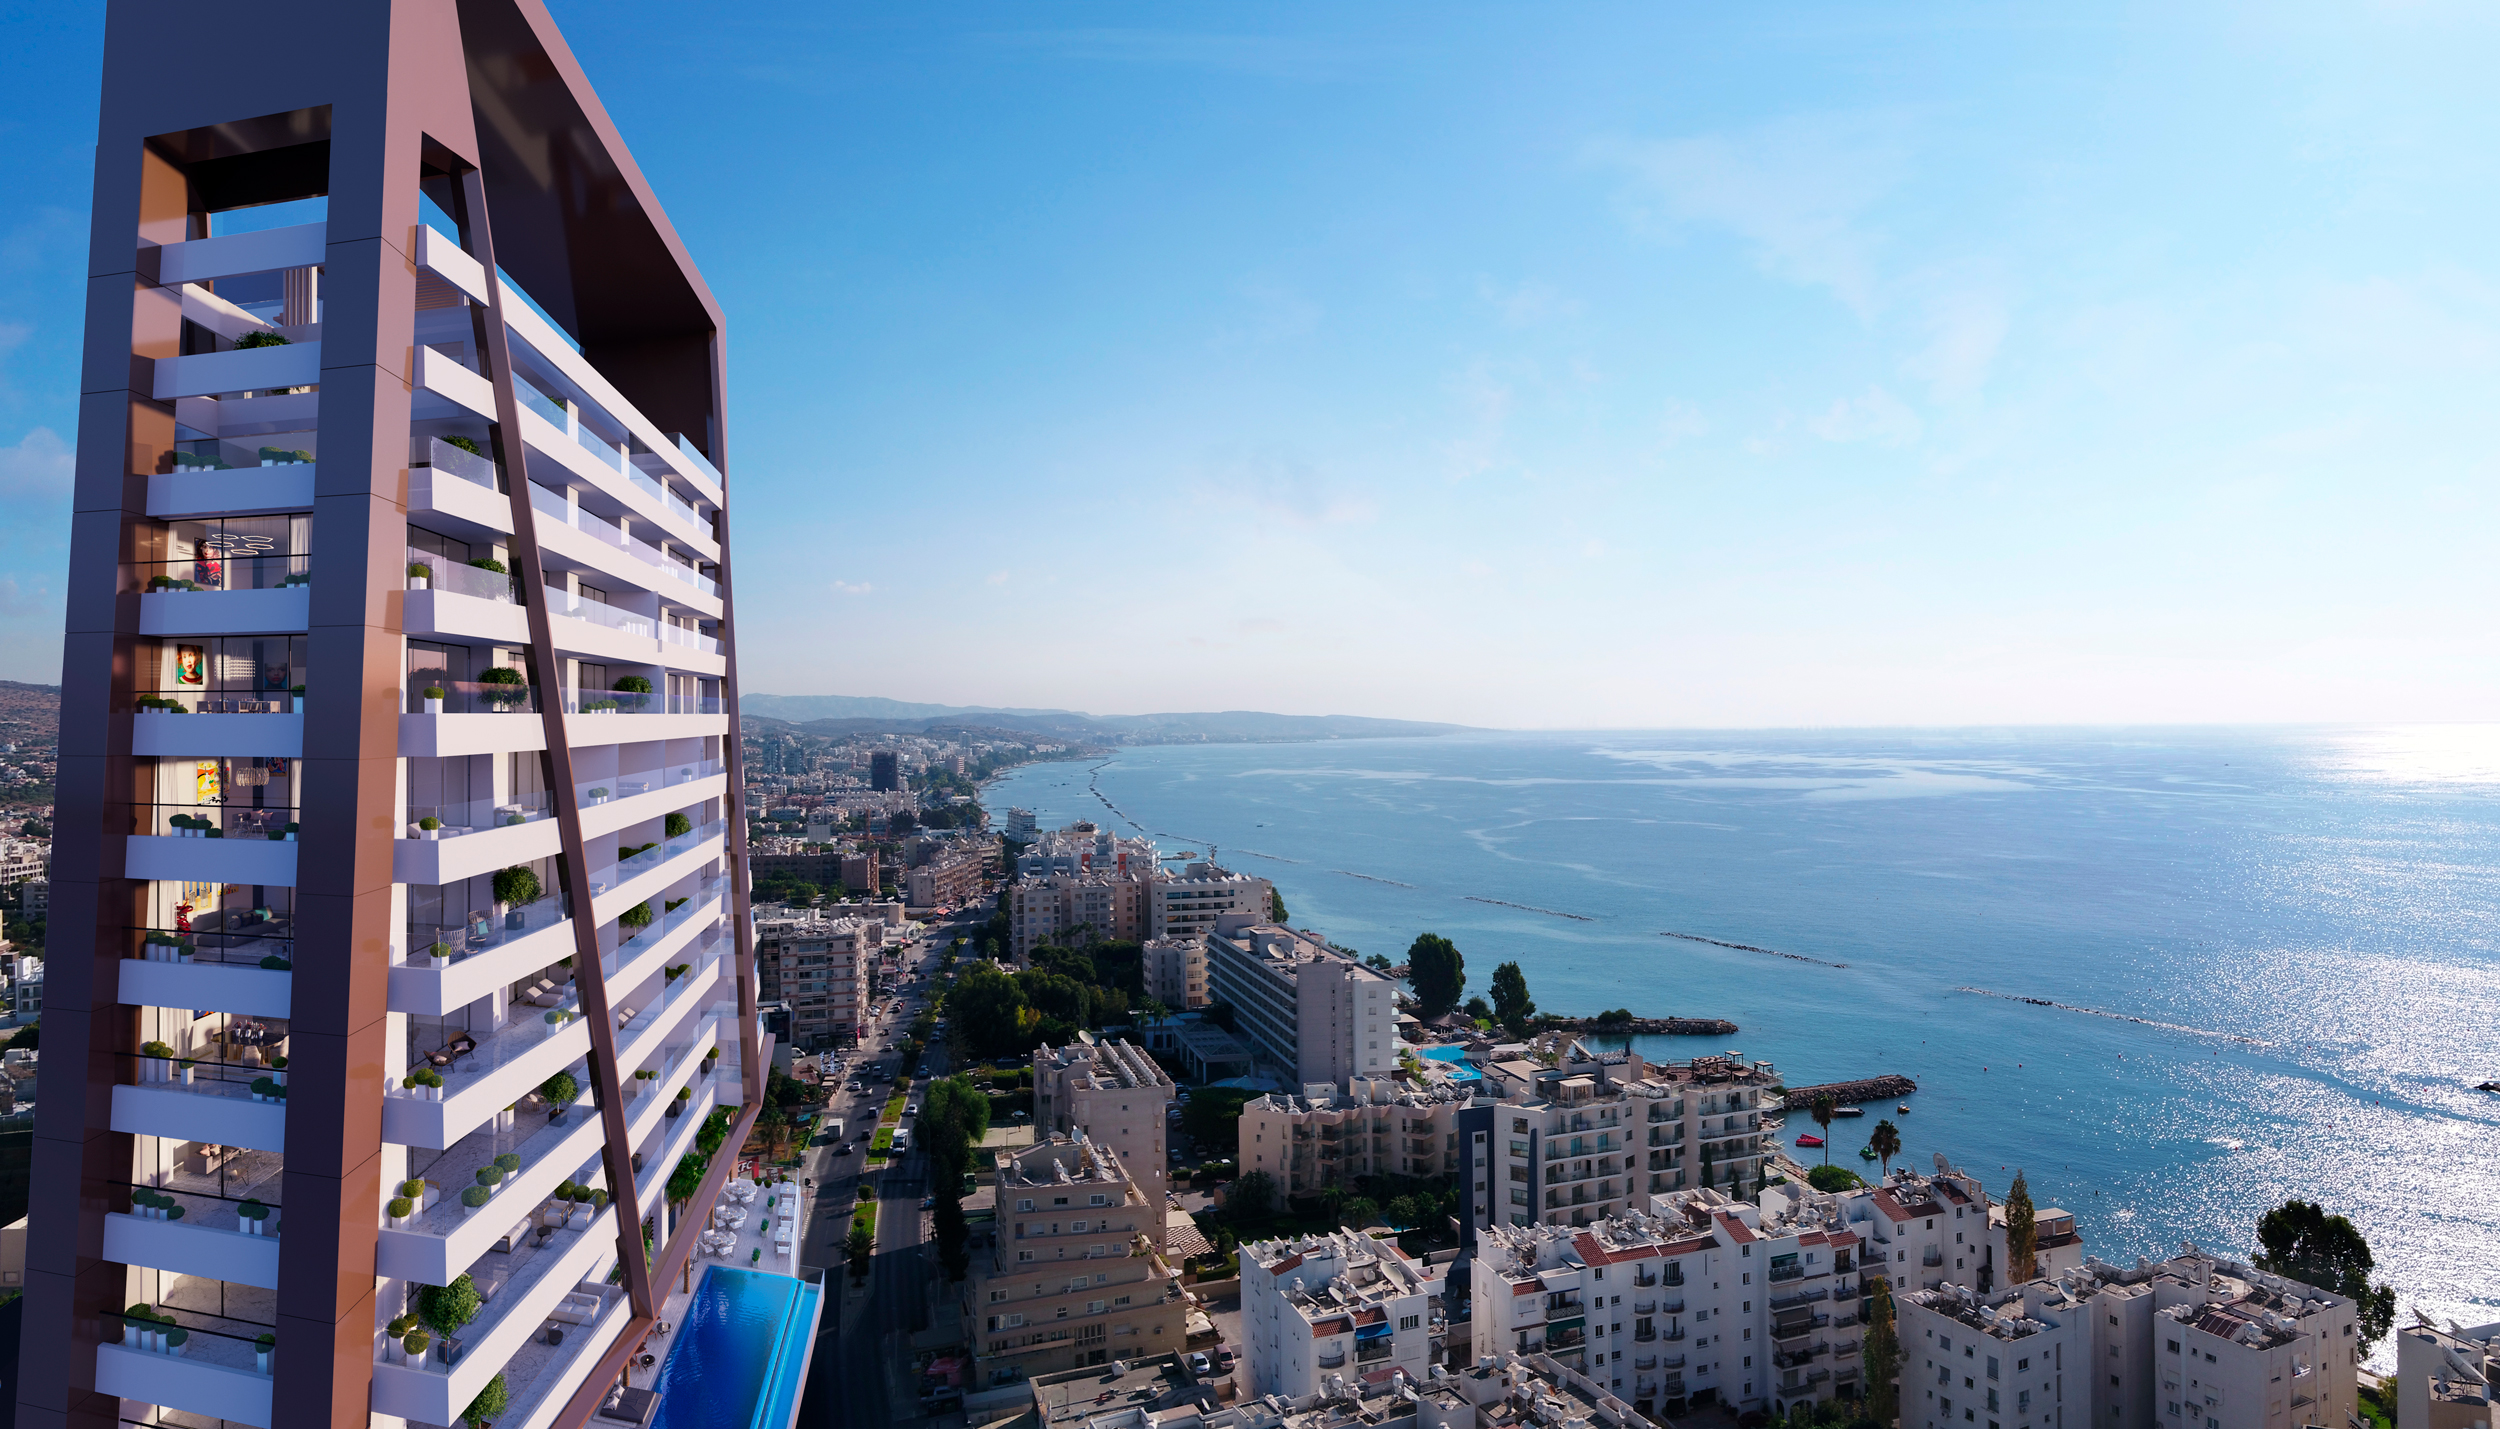 The Icon, Limassol - High Rise Development by Imperio